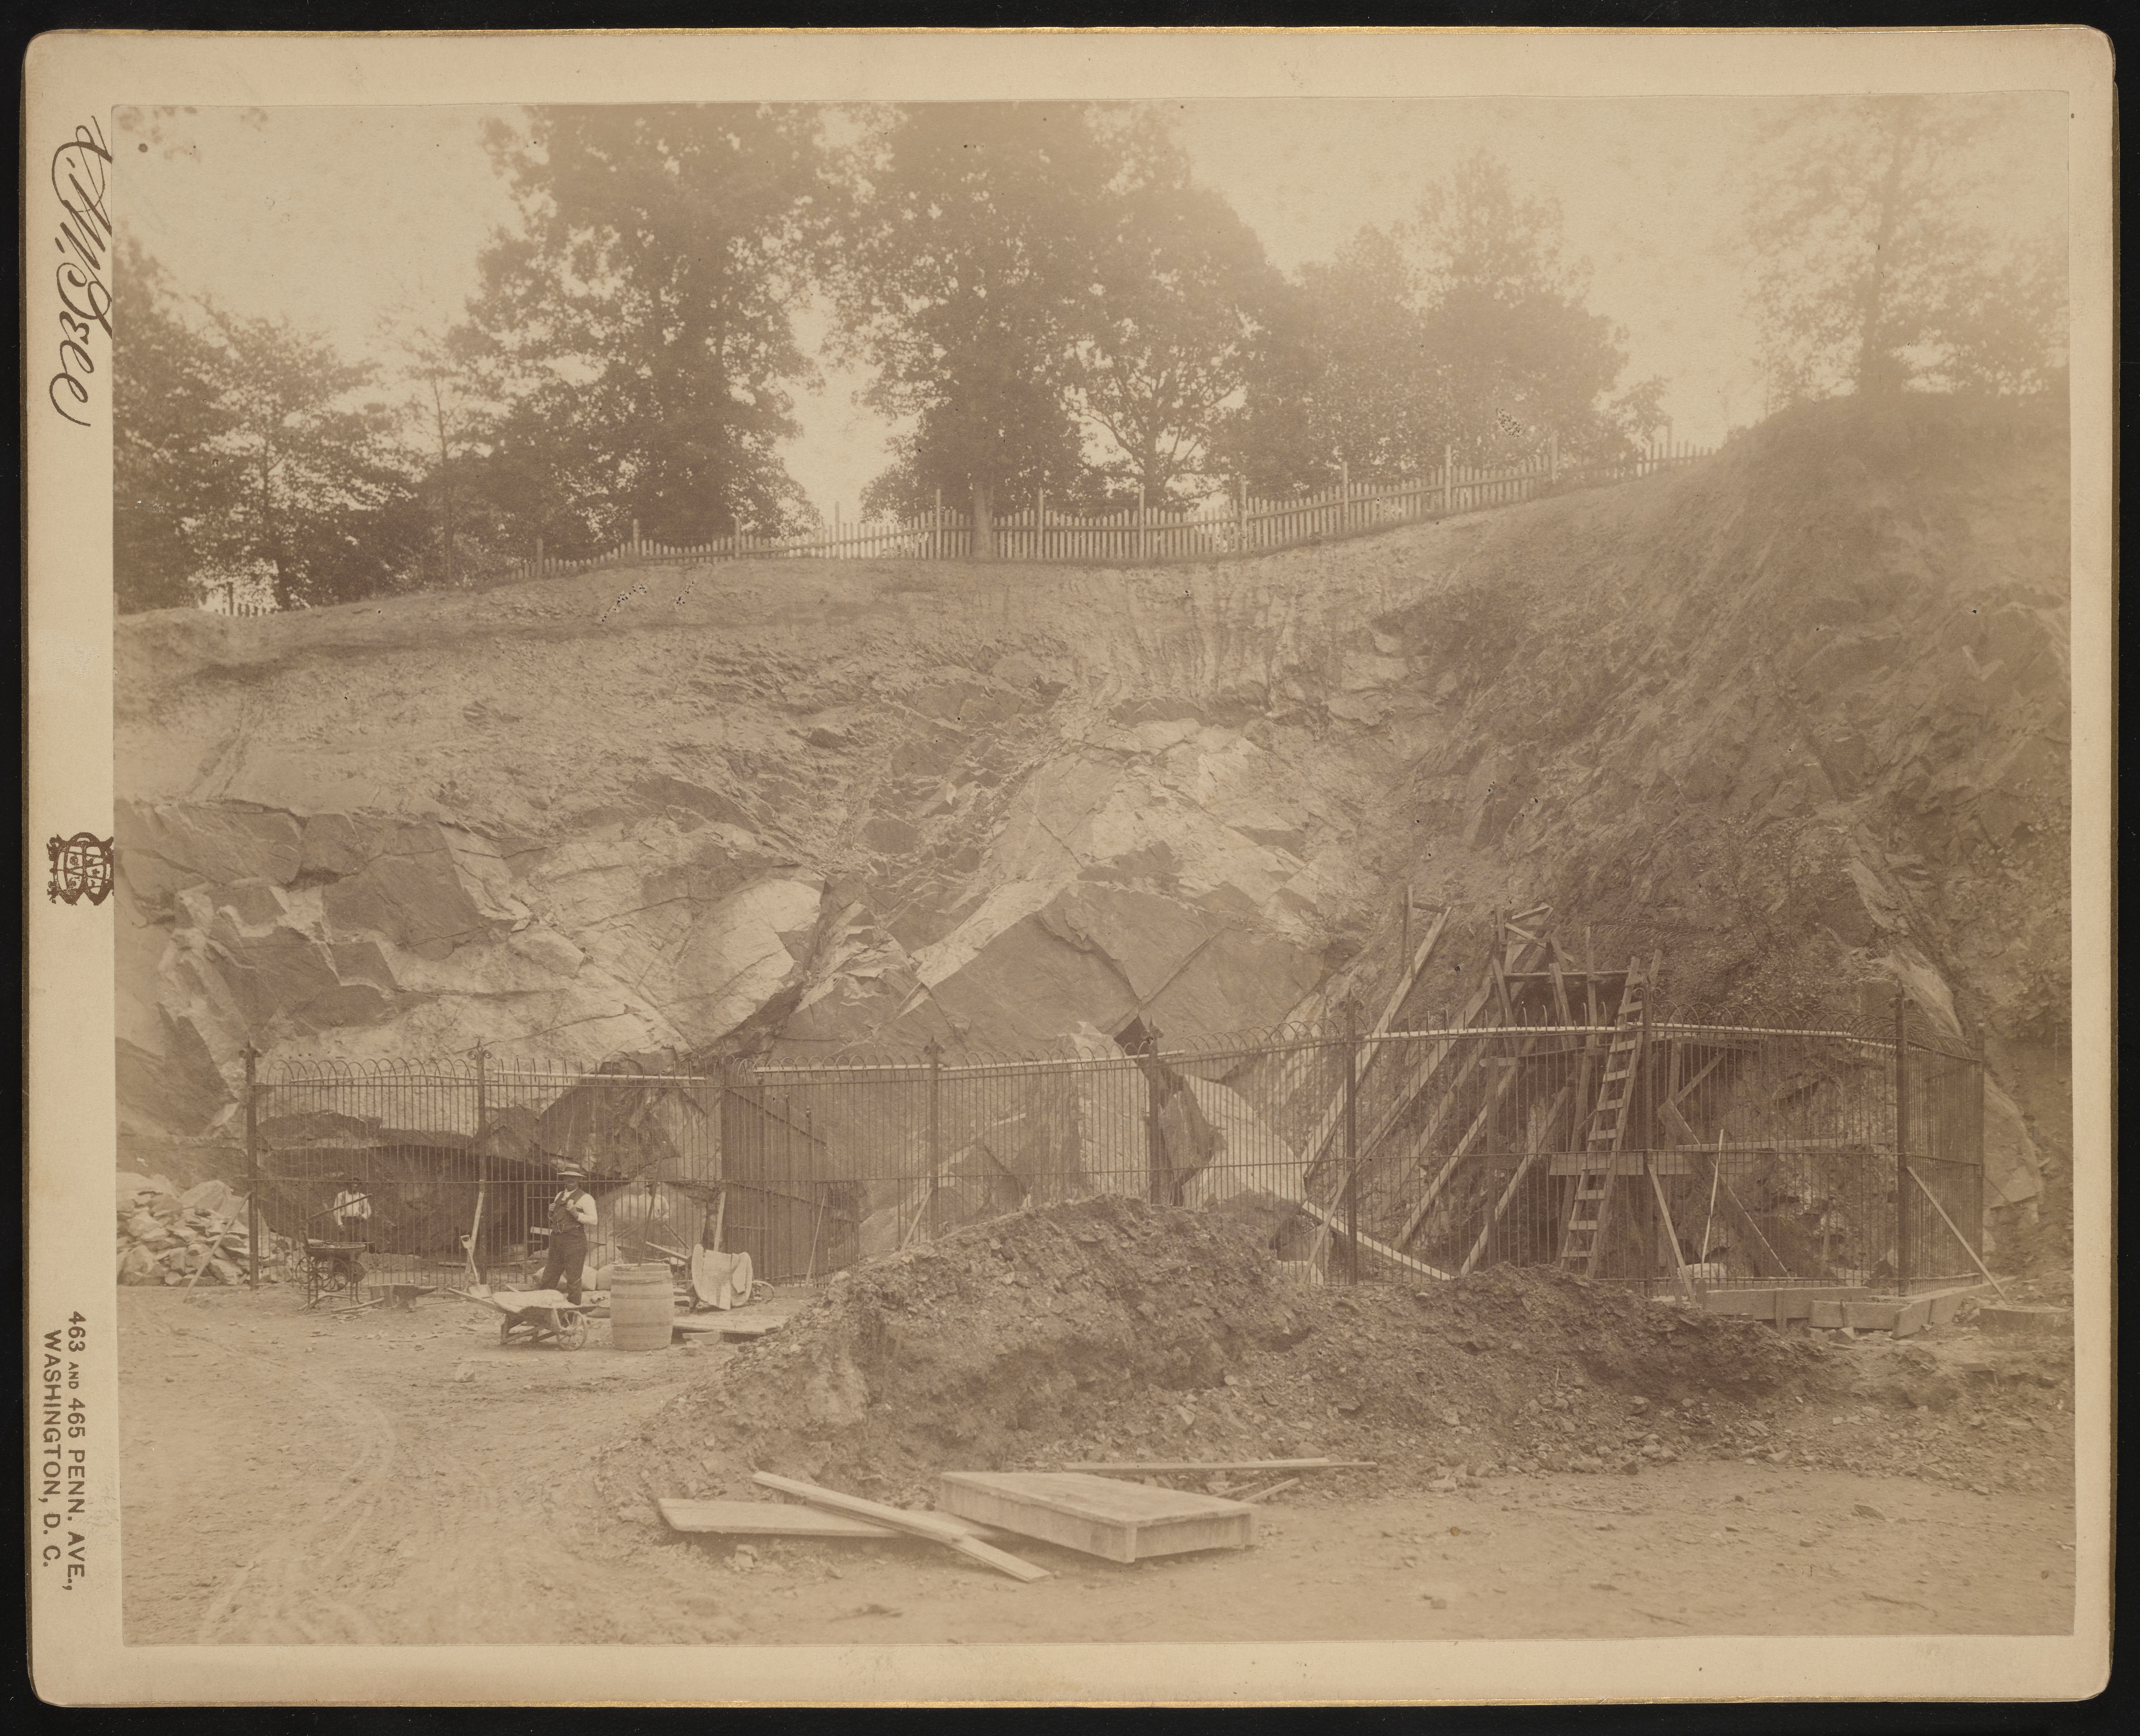 National Zoological Park, Construction of Bear Cages at Rock Quarry